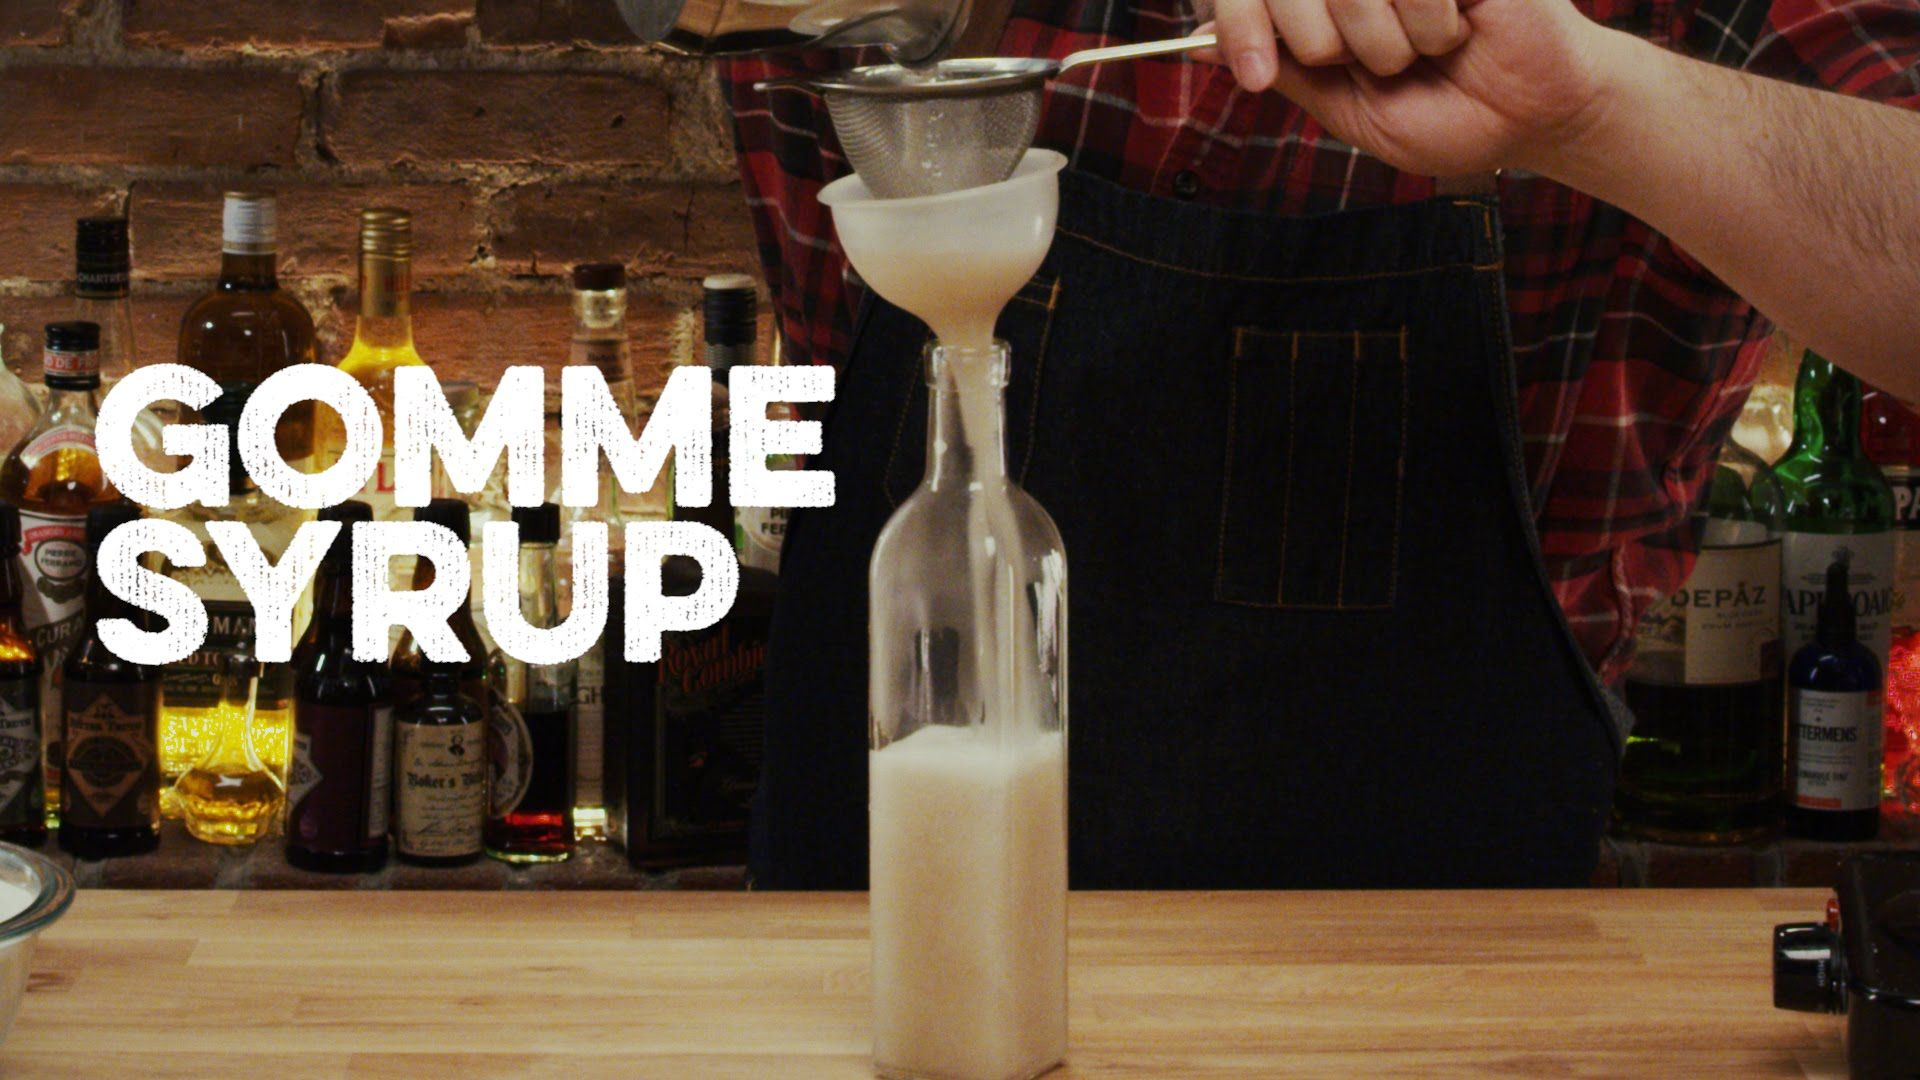 How to Drink: Gomme Syrup #cocktails #drinks #HappyHour #food #sun #lunch #bar #London